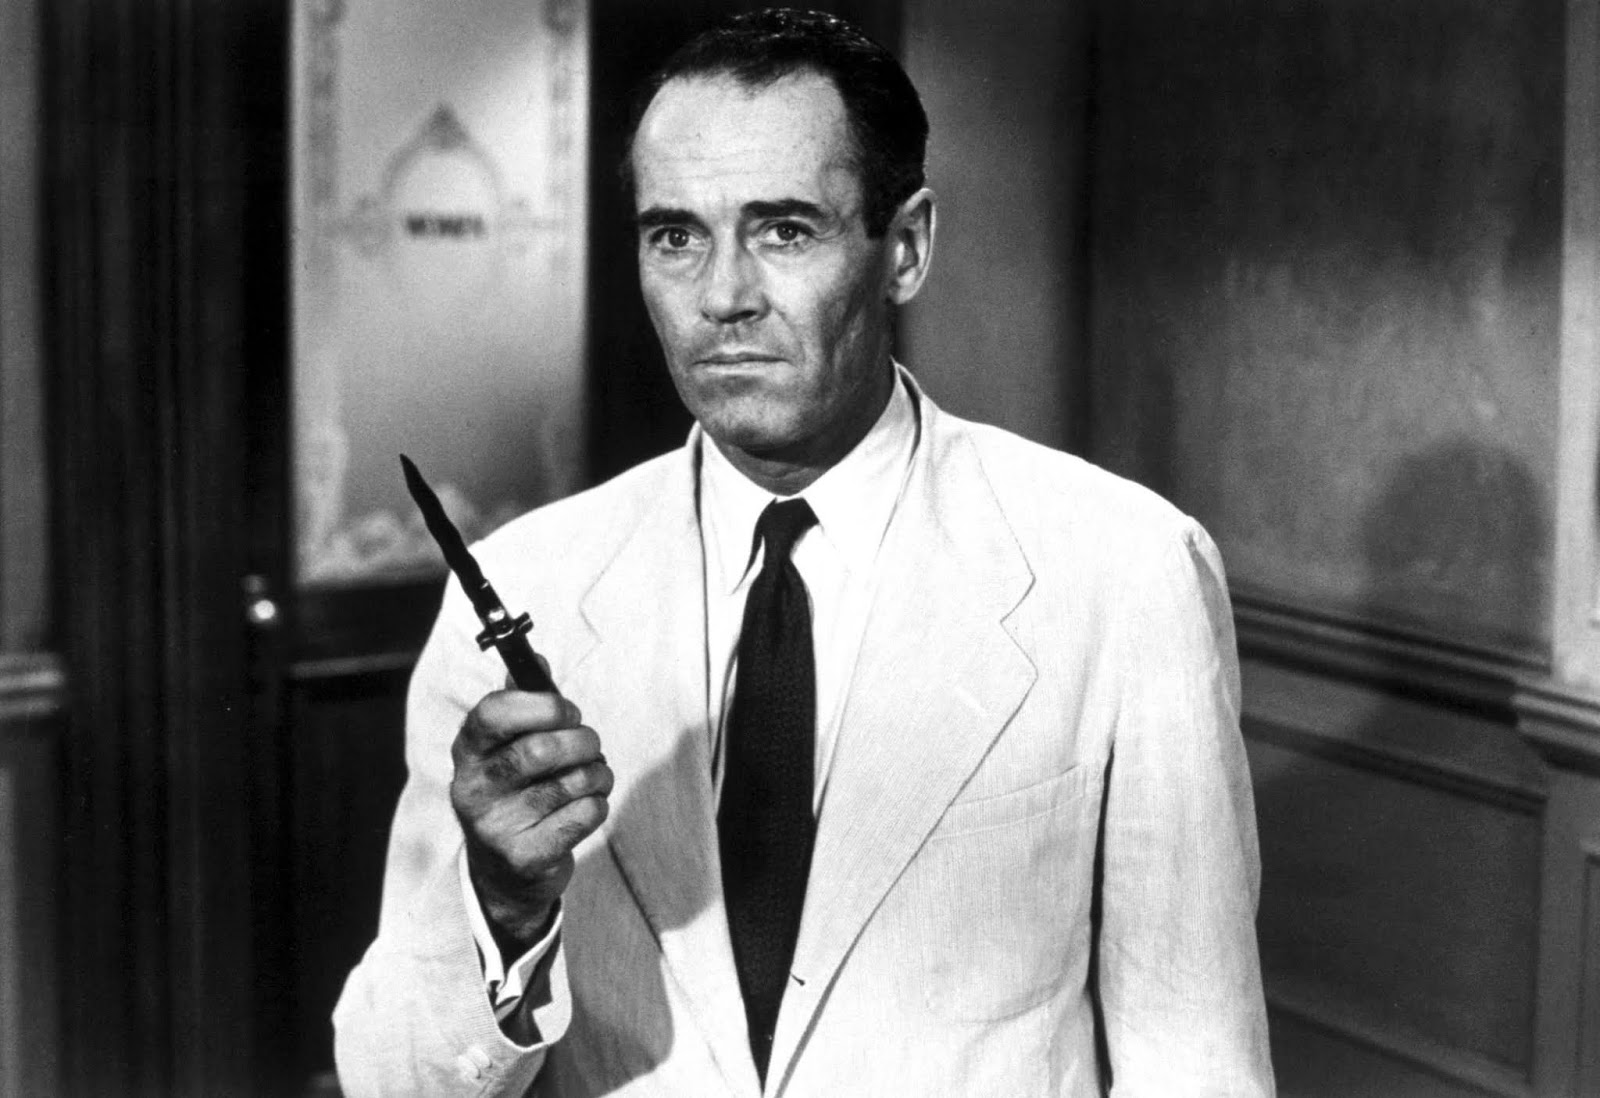 free screensaver wallpapers for 12 angry men download